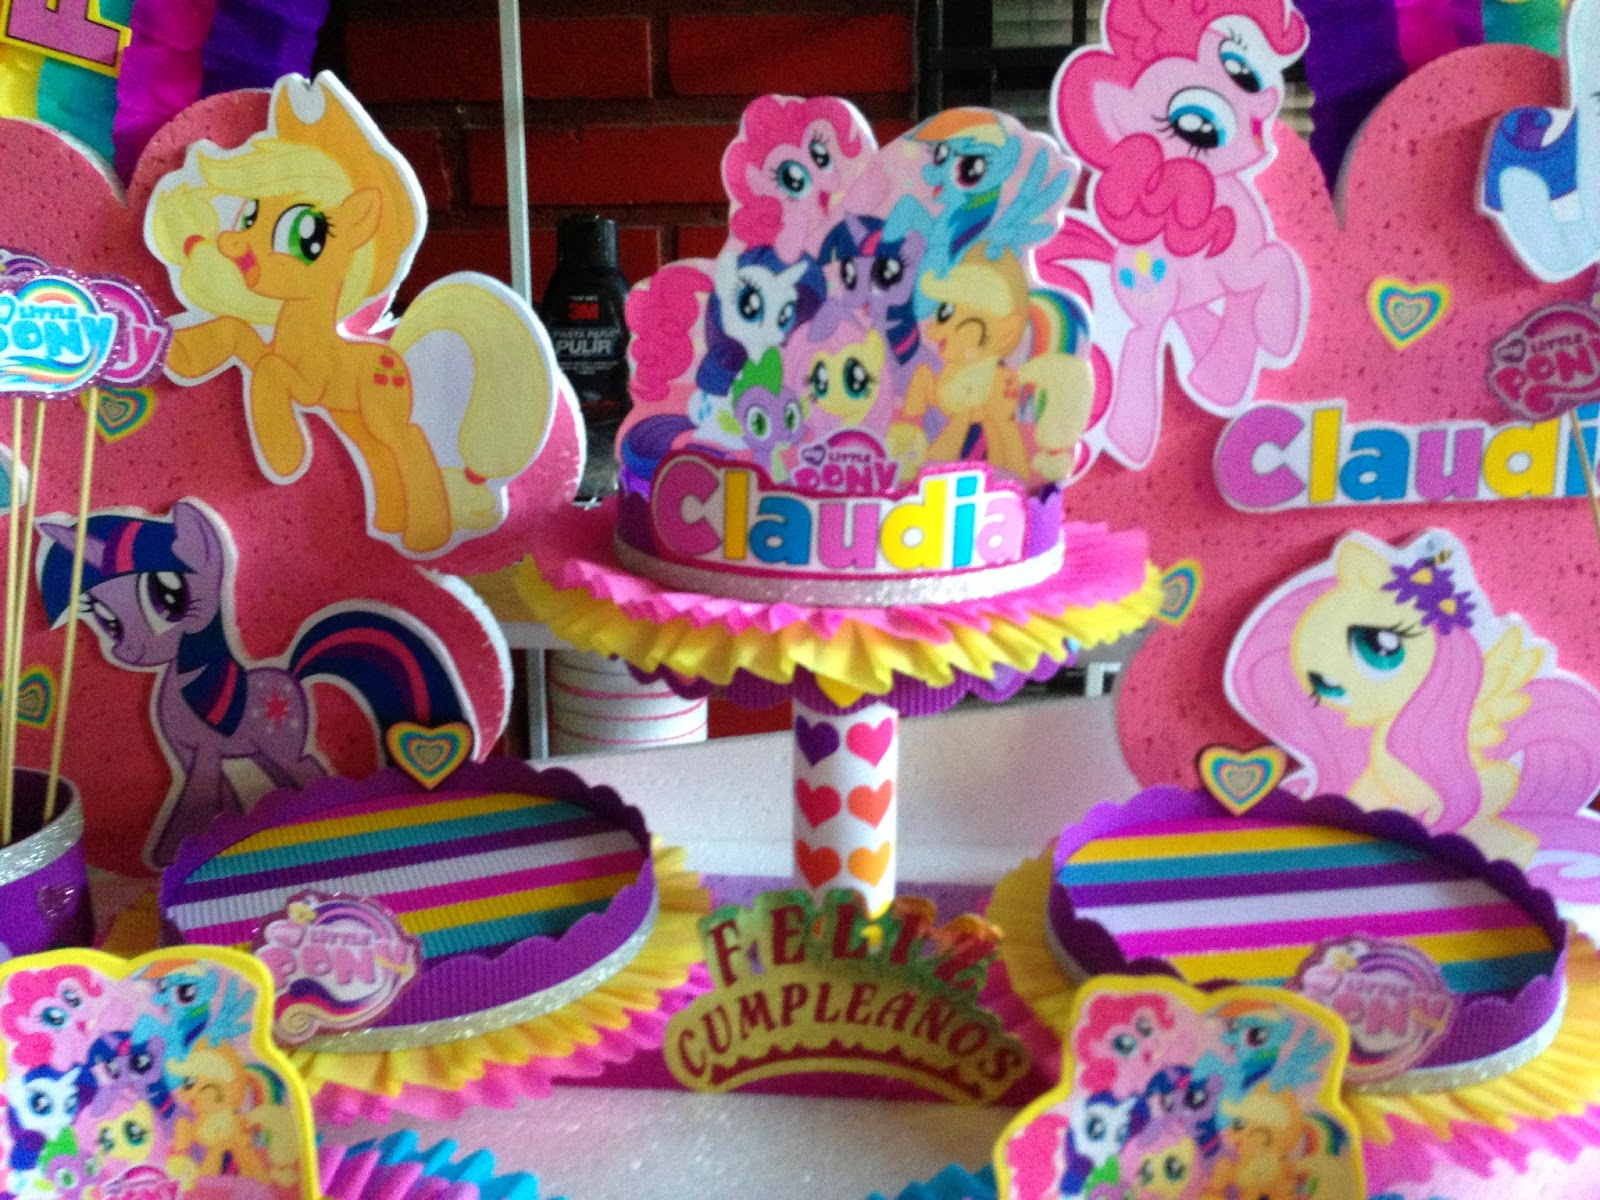 Decoraciones para fiestas infantiles my little pony - Imagui